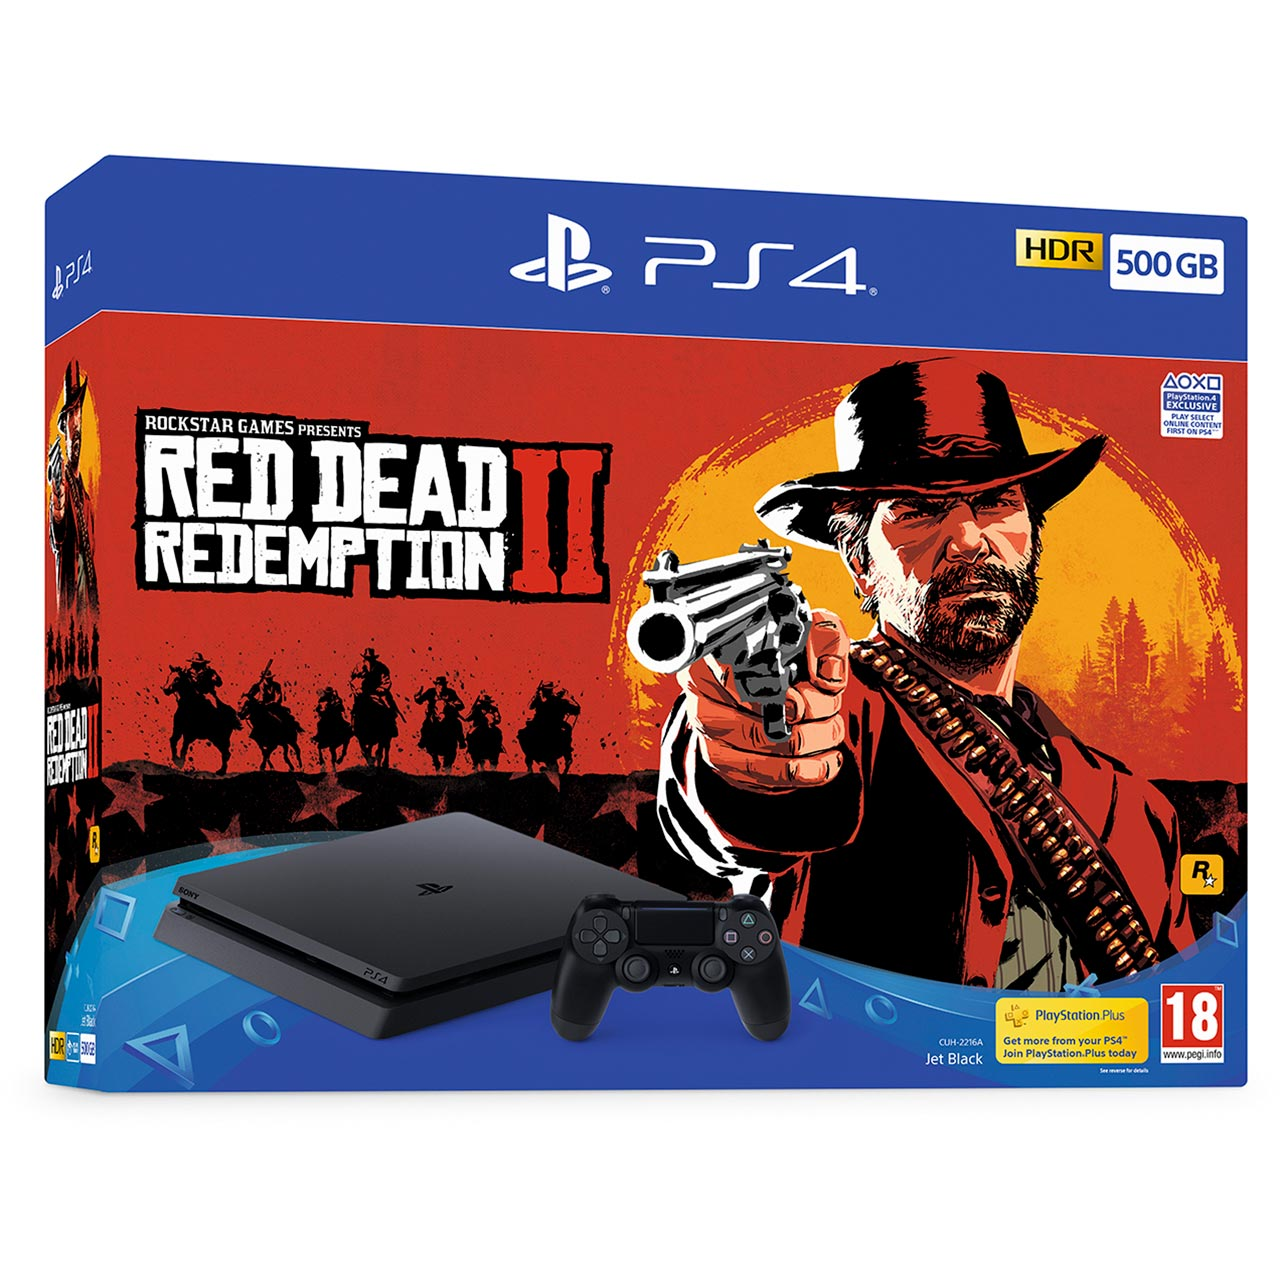 Sony PS4 Red Dead Redemption 2 Bundle, 500GB